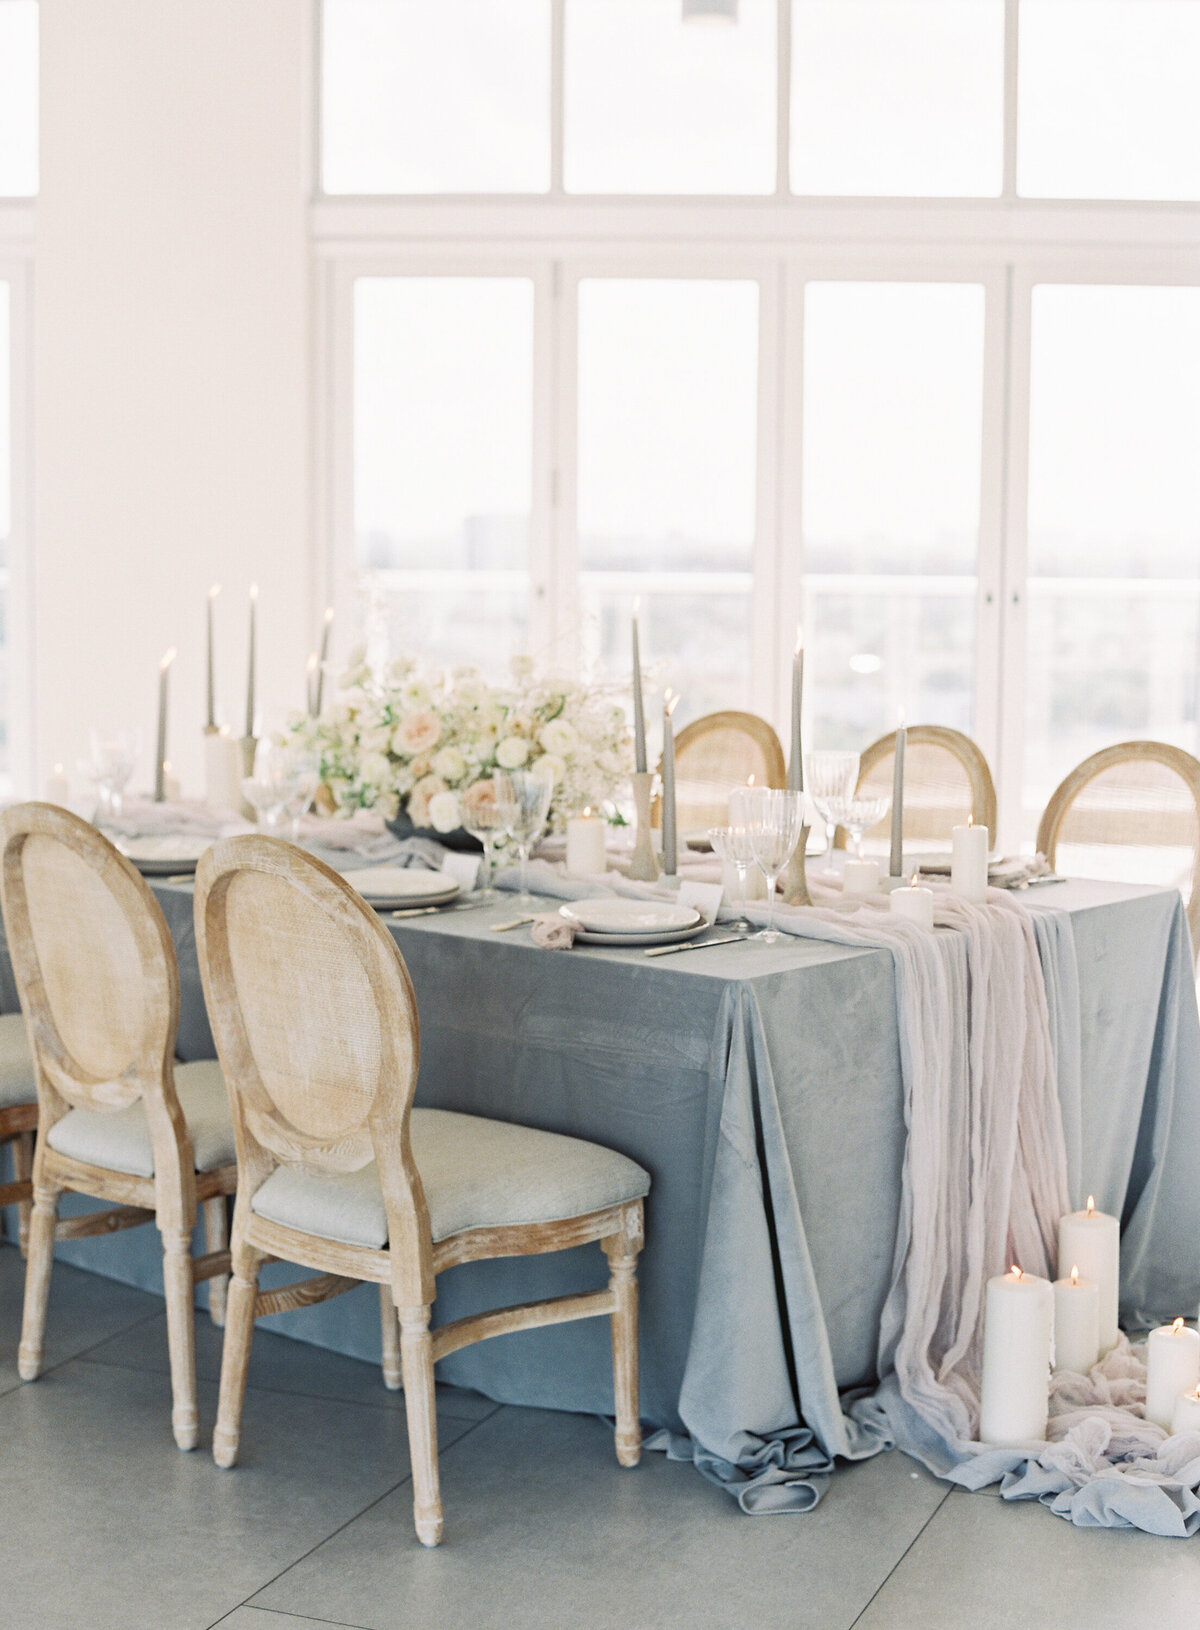 Penthouse_at_Riverside_Warf_Miami_Wedding_Fine_art_Film_Photographer-53